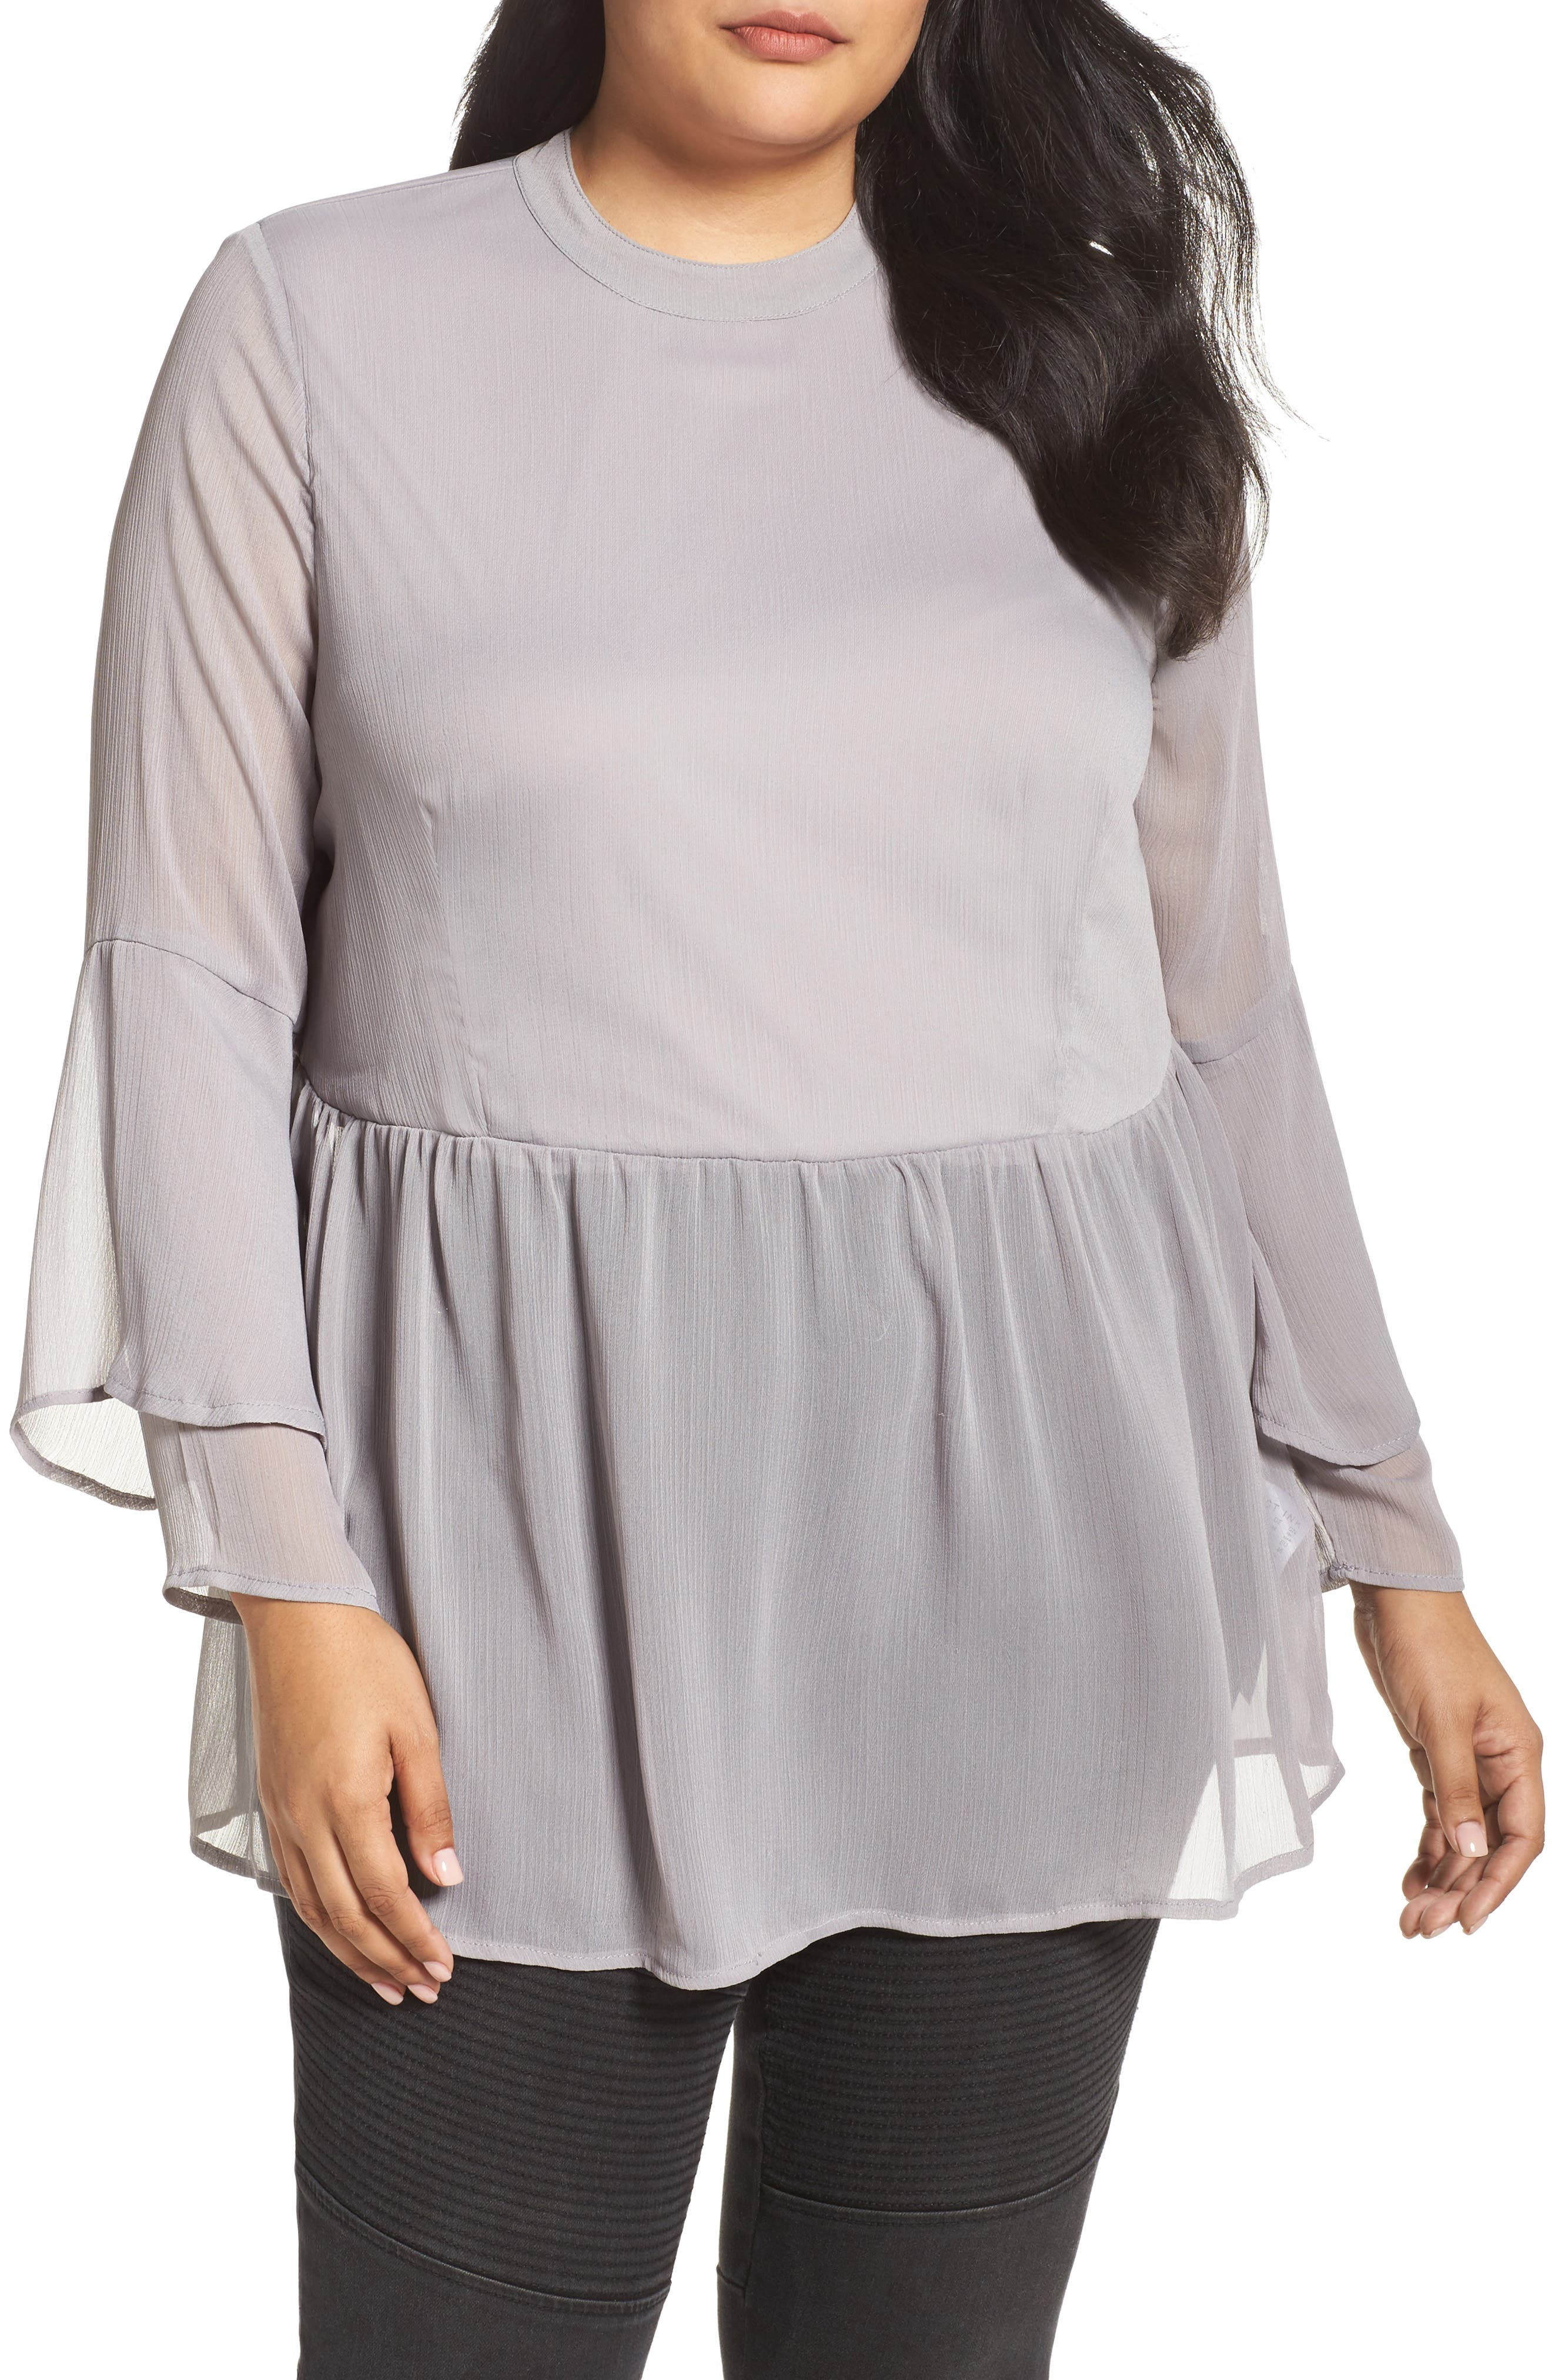 Alternate Image 1 Selected - LOST INK Crinkled Chiffon Top (Plus Size)